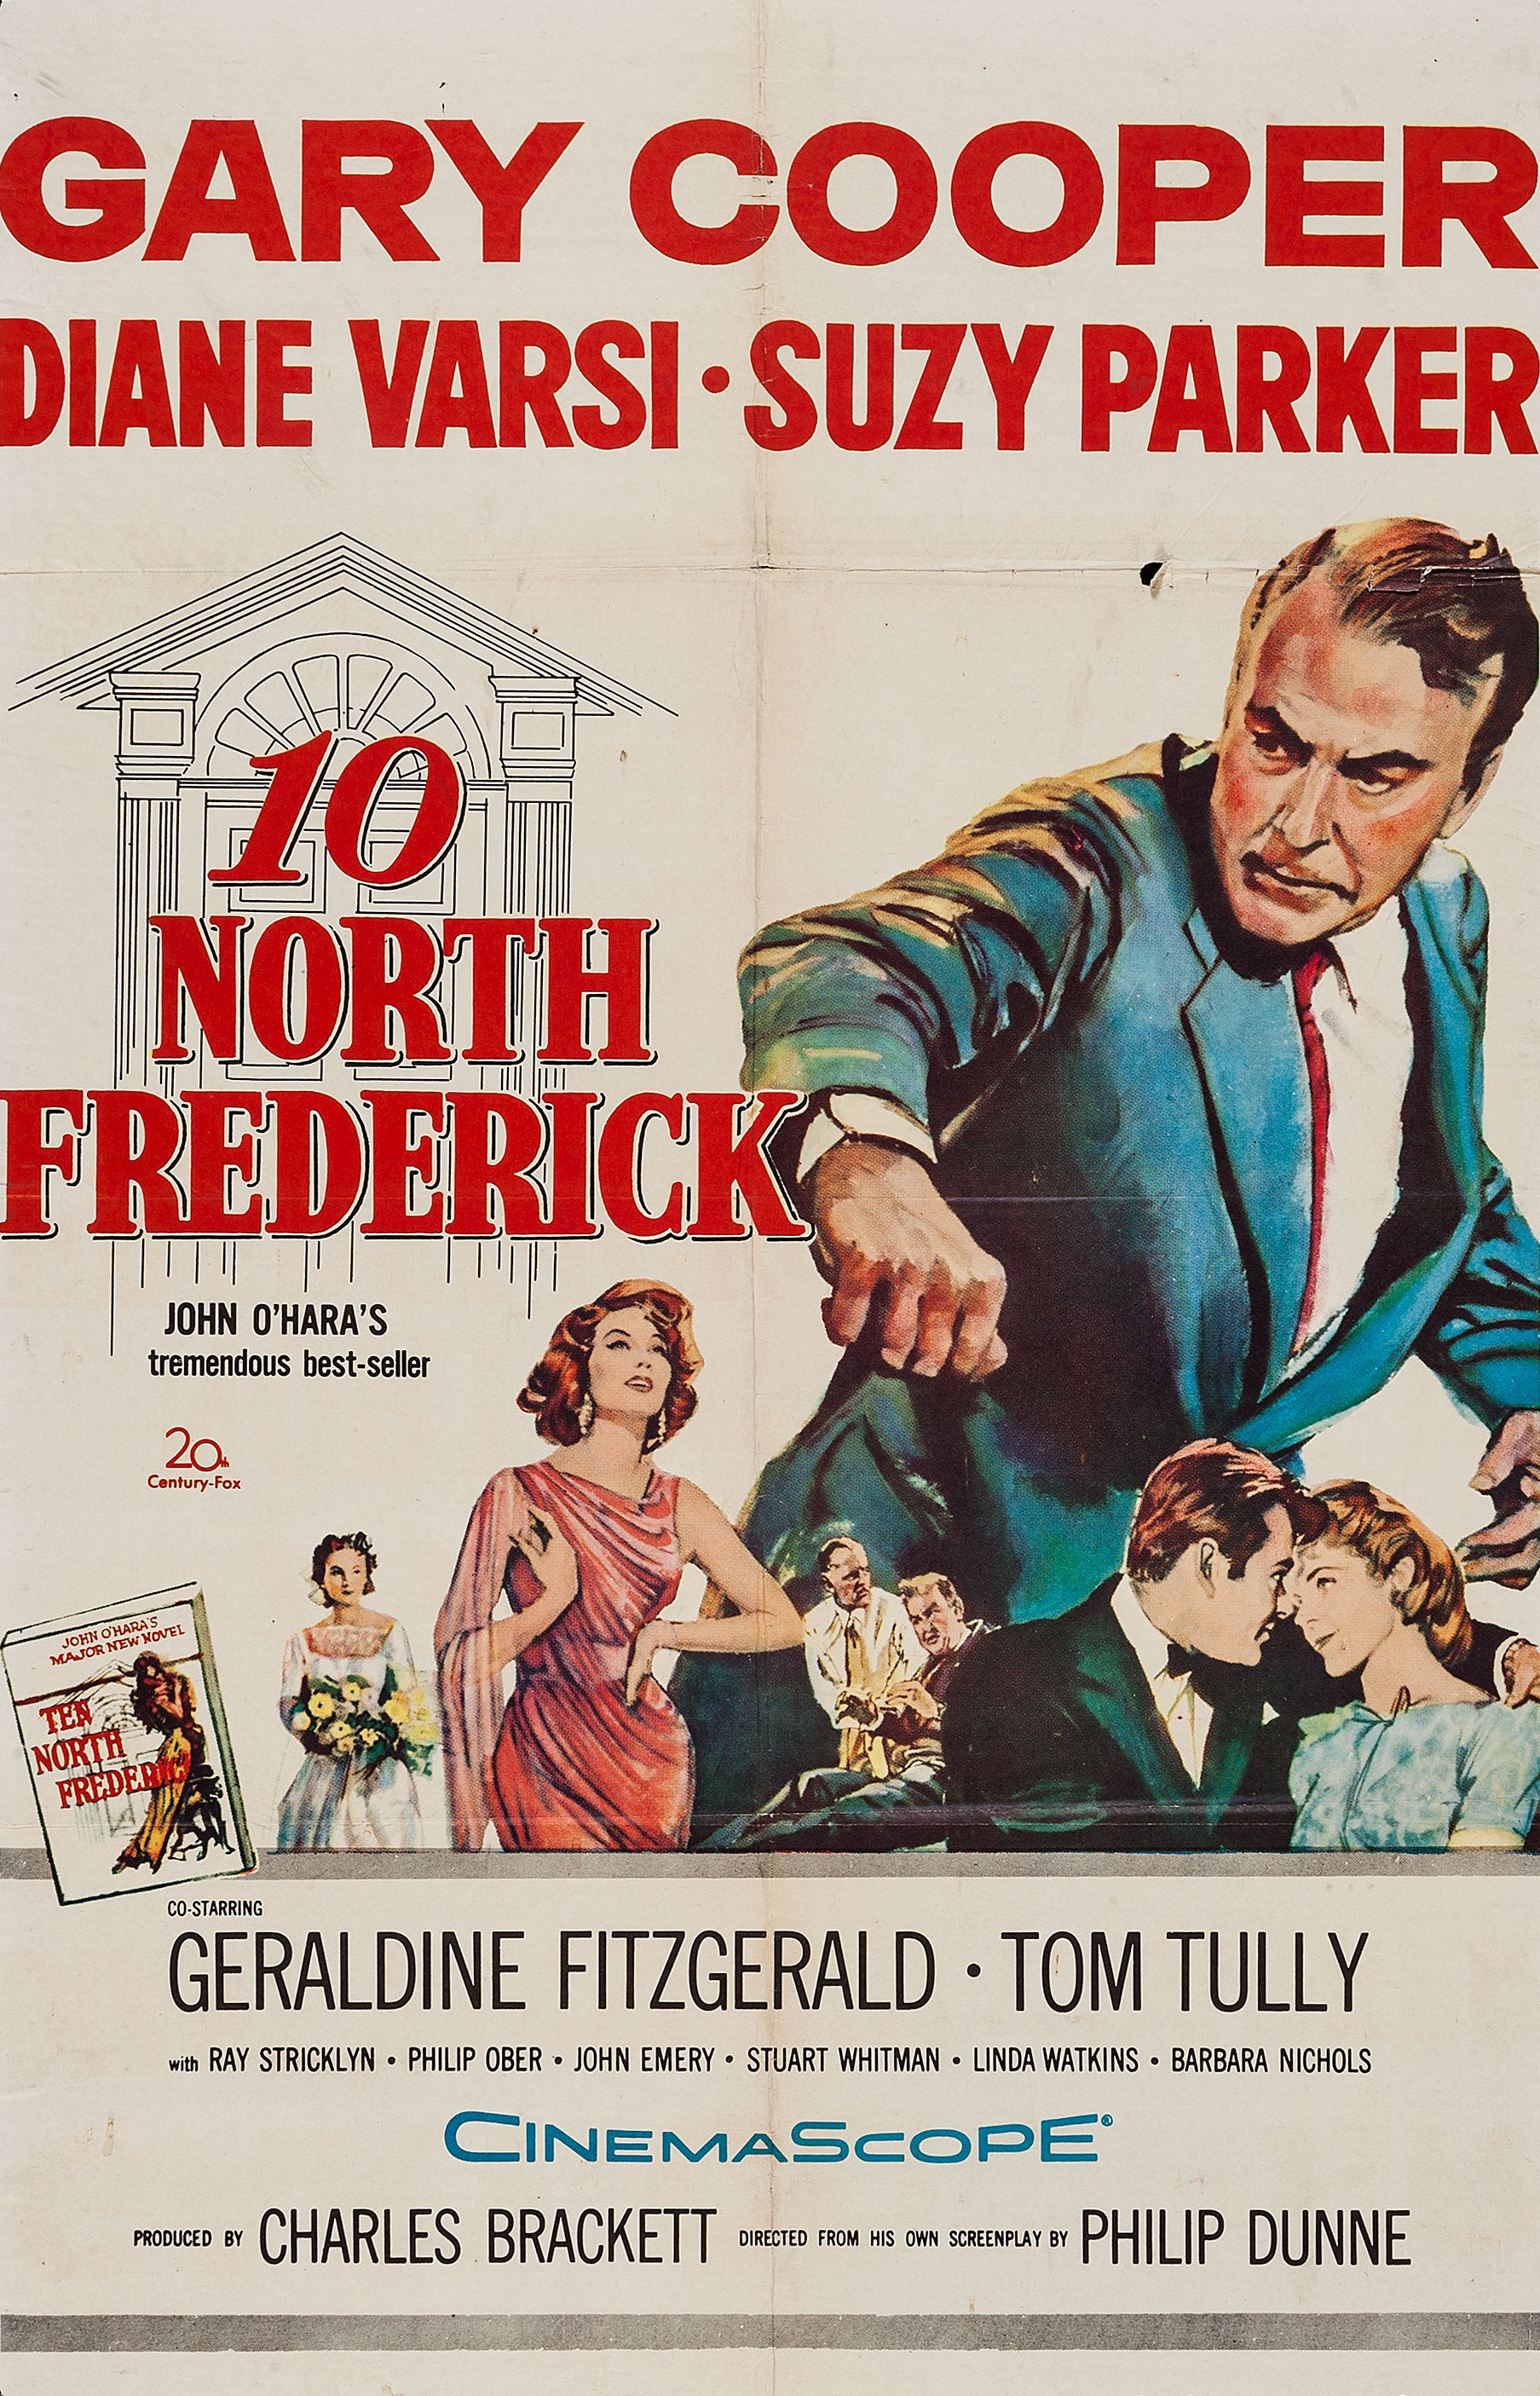 - Director Philip Dunne's 1958 drama, based on John O'Hara's novel, stars Gary Cooper as a wealthy, aging businessman with political ambitions who conducts an adulturous affair with his daughter's roommate (Suzy Parker). The cast also includes Geraldine Fitzgerald, Diane Varsi, Ray Stricklyn, Barbara Nichols, Tom Tully and Stuart Whitman.19581 h 42 min